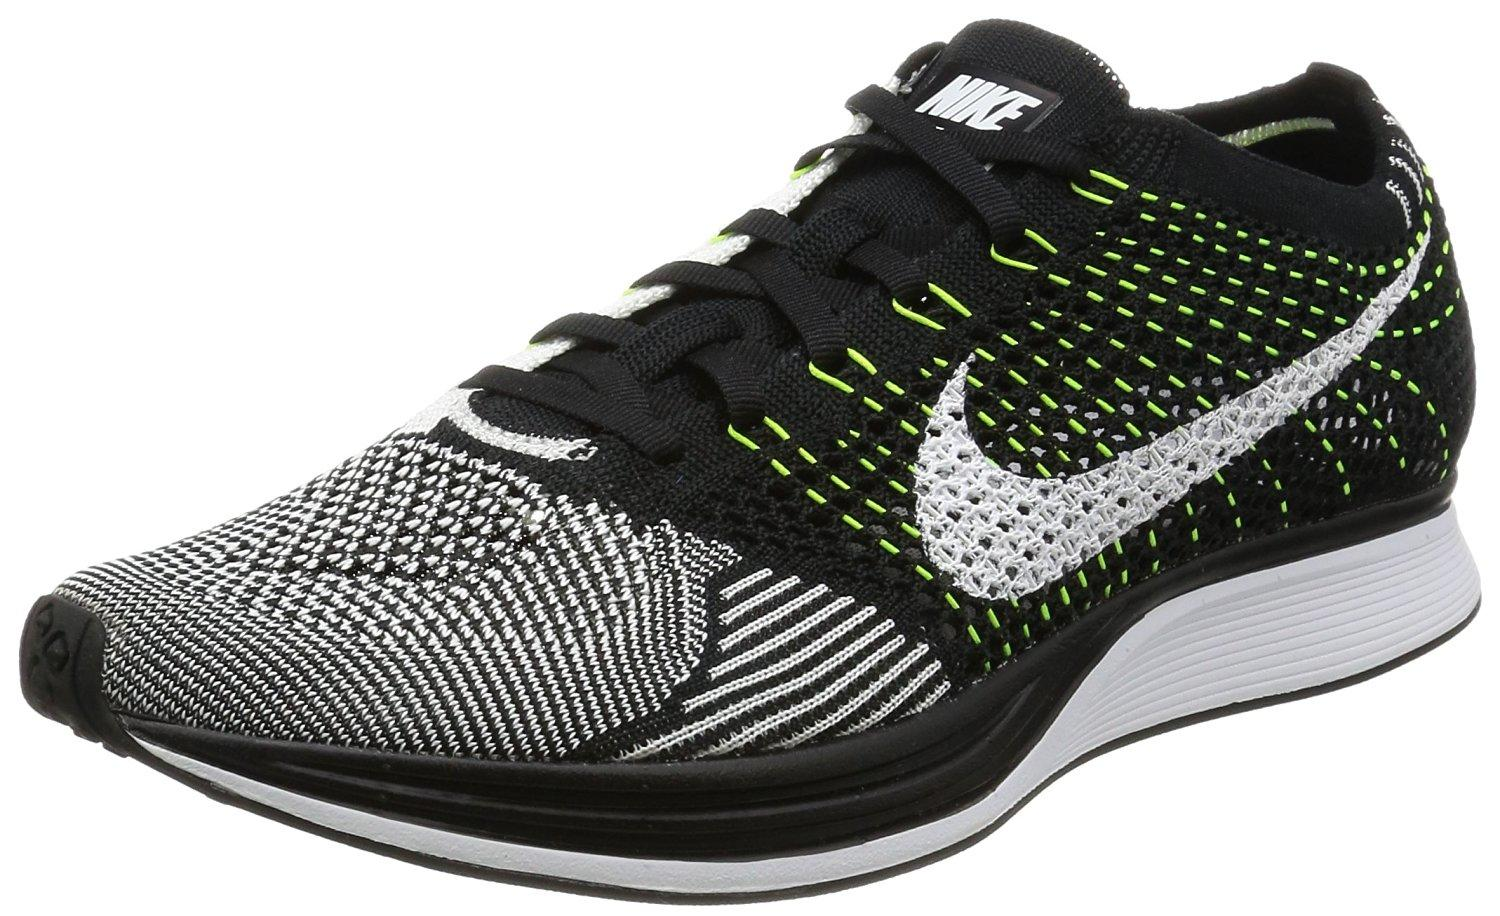 Nike Flyknit Racer Reviewed